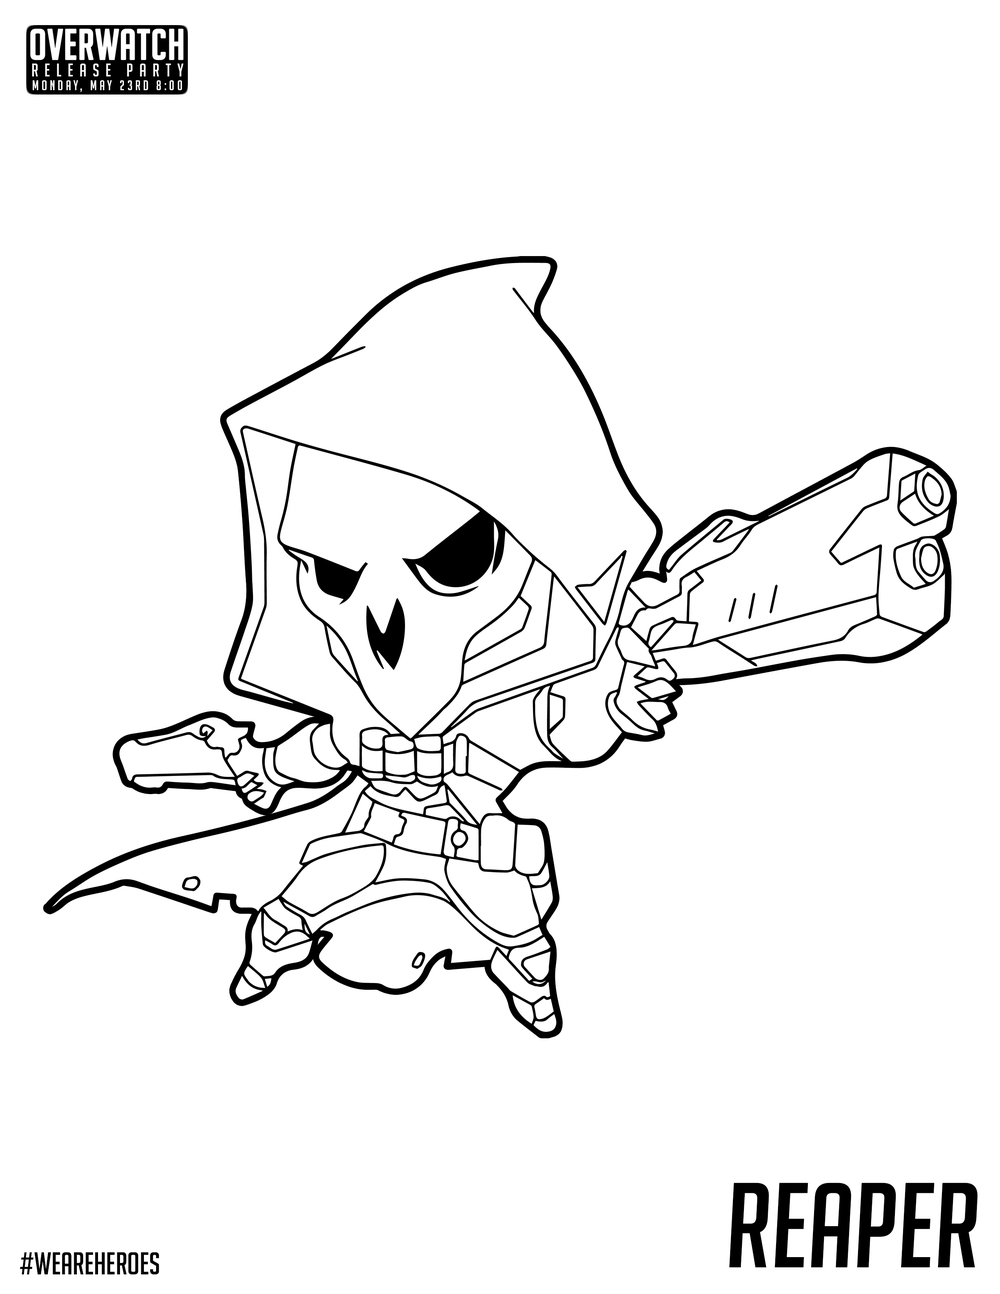 Reaper Coloring Pages